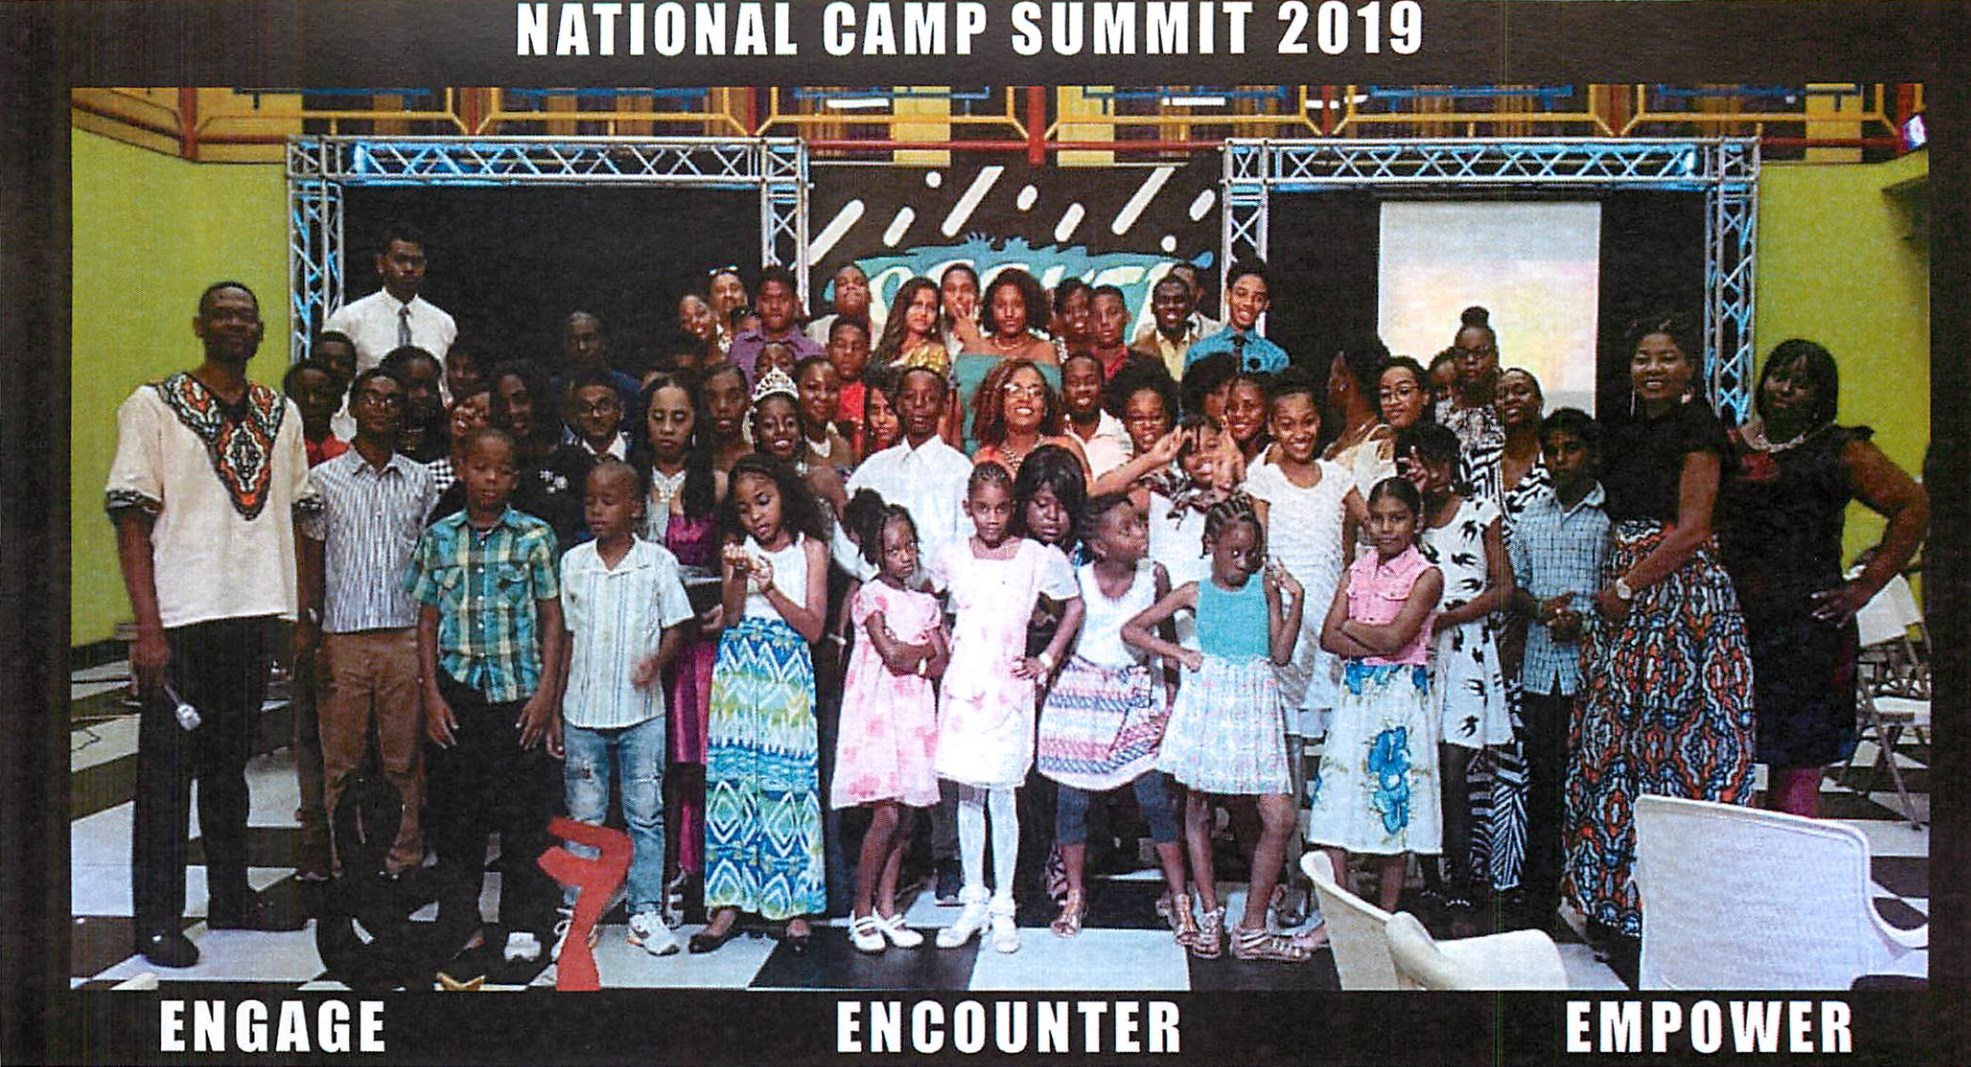 National Camp Summit Conference 2019